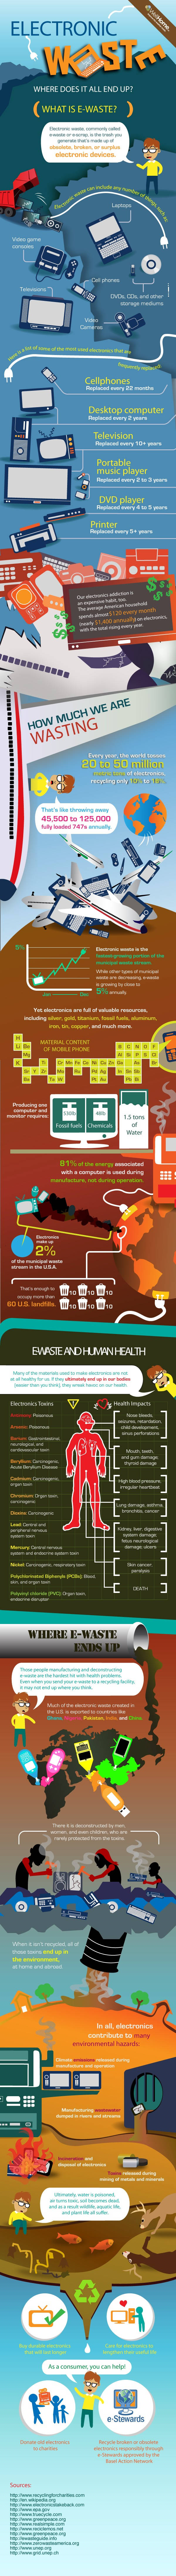 Electronic Waste Where Does it All End Up - Infographic